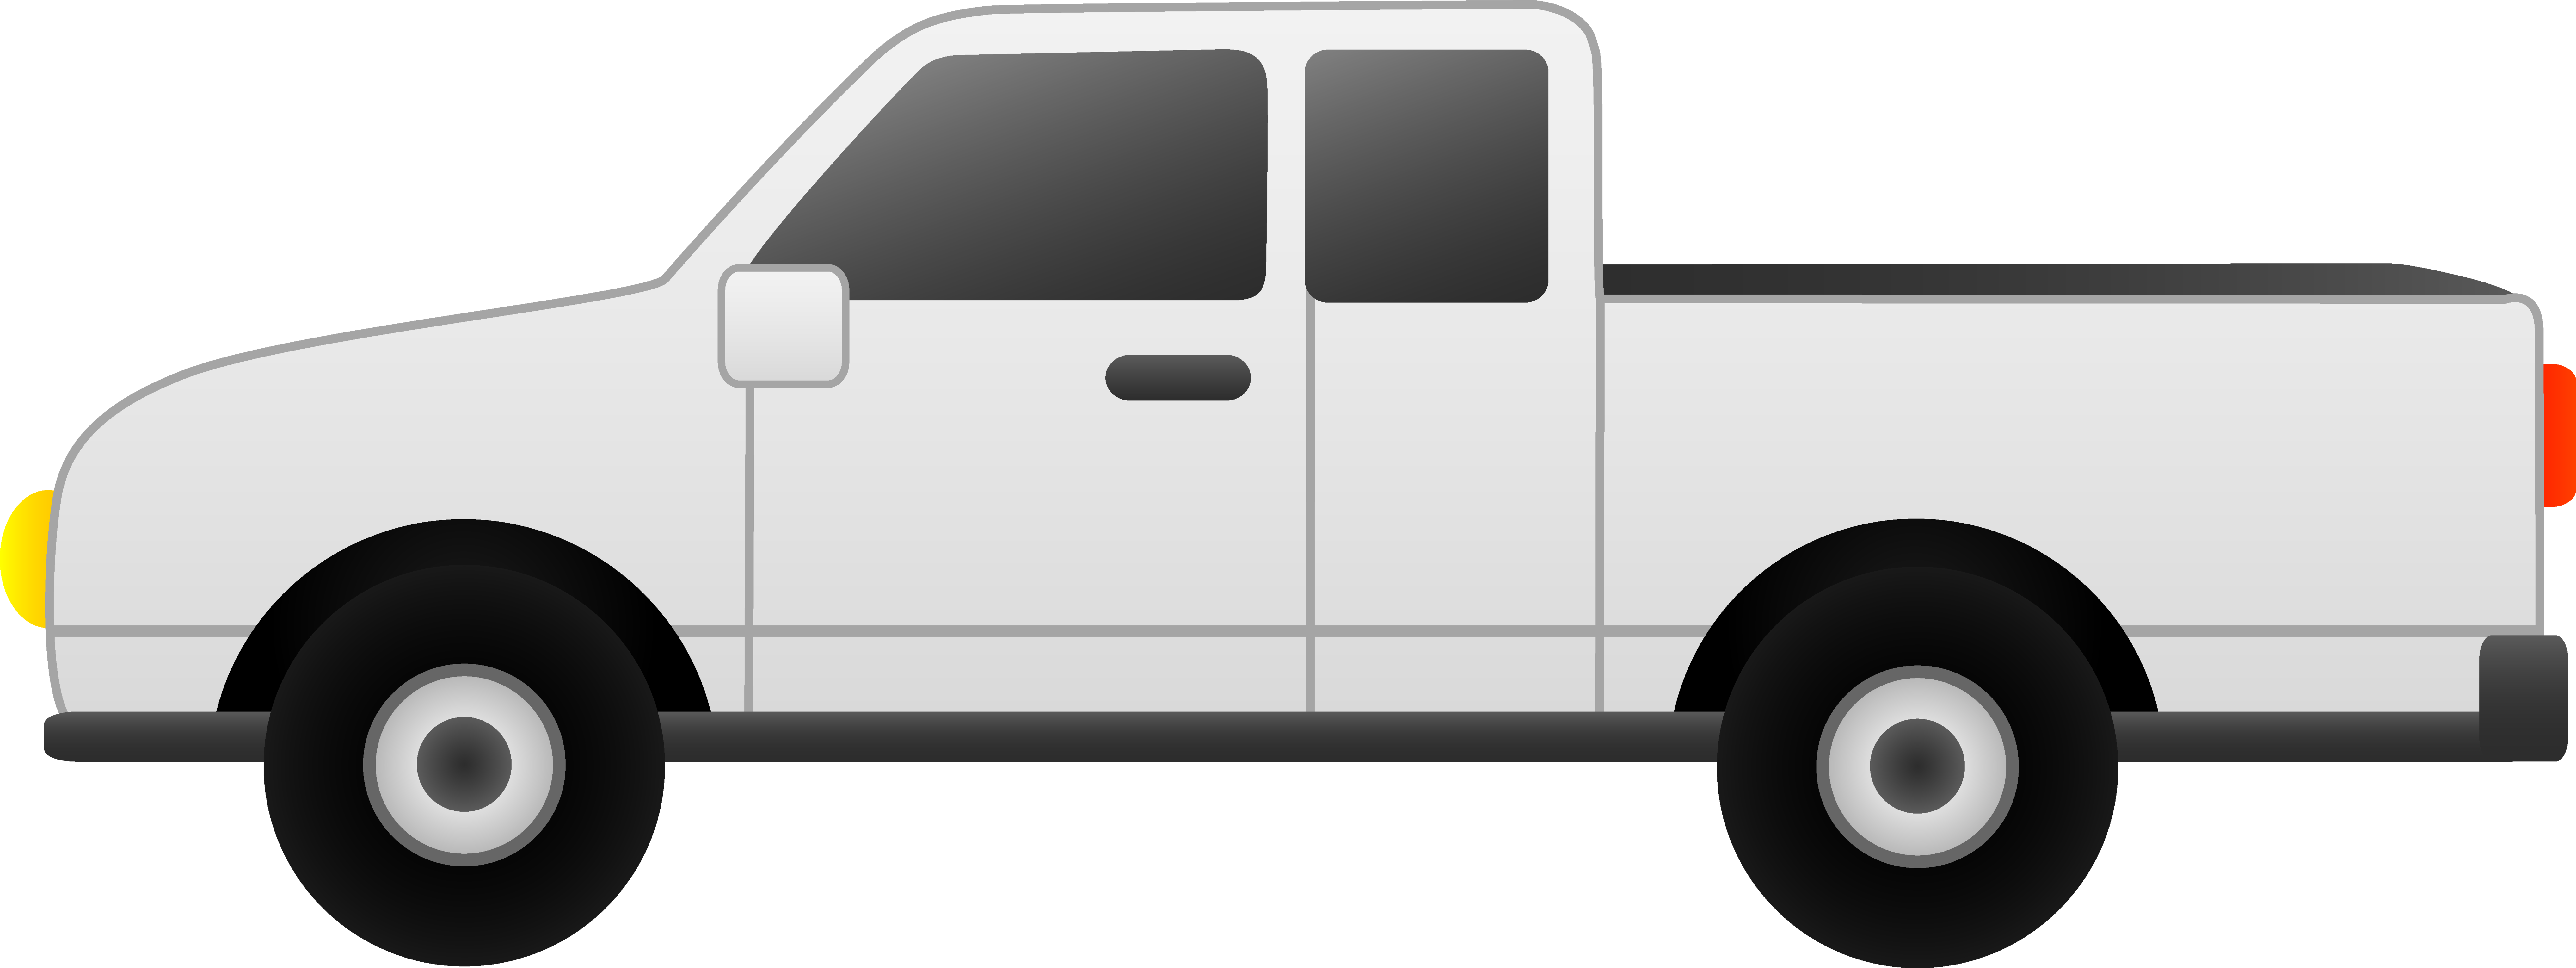 Pickup Truck Clipart.